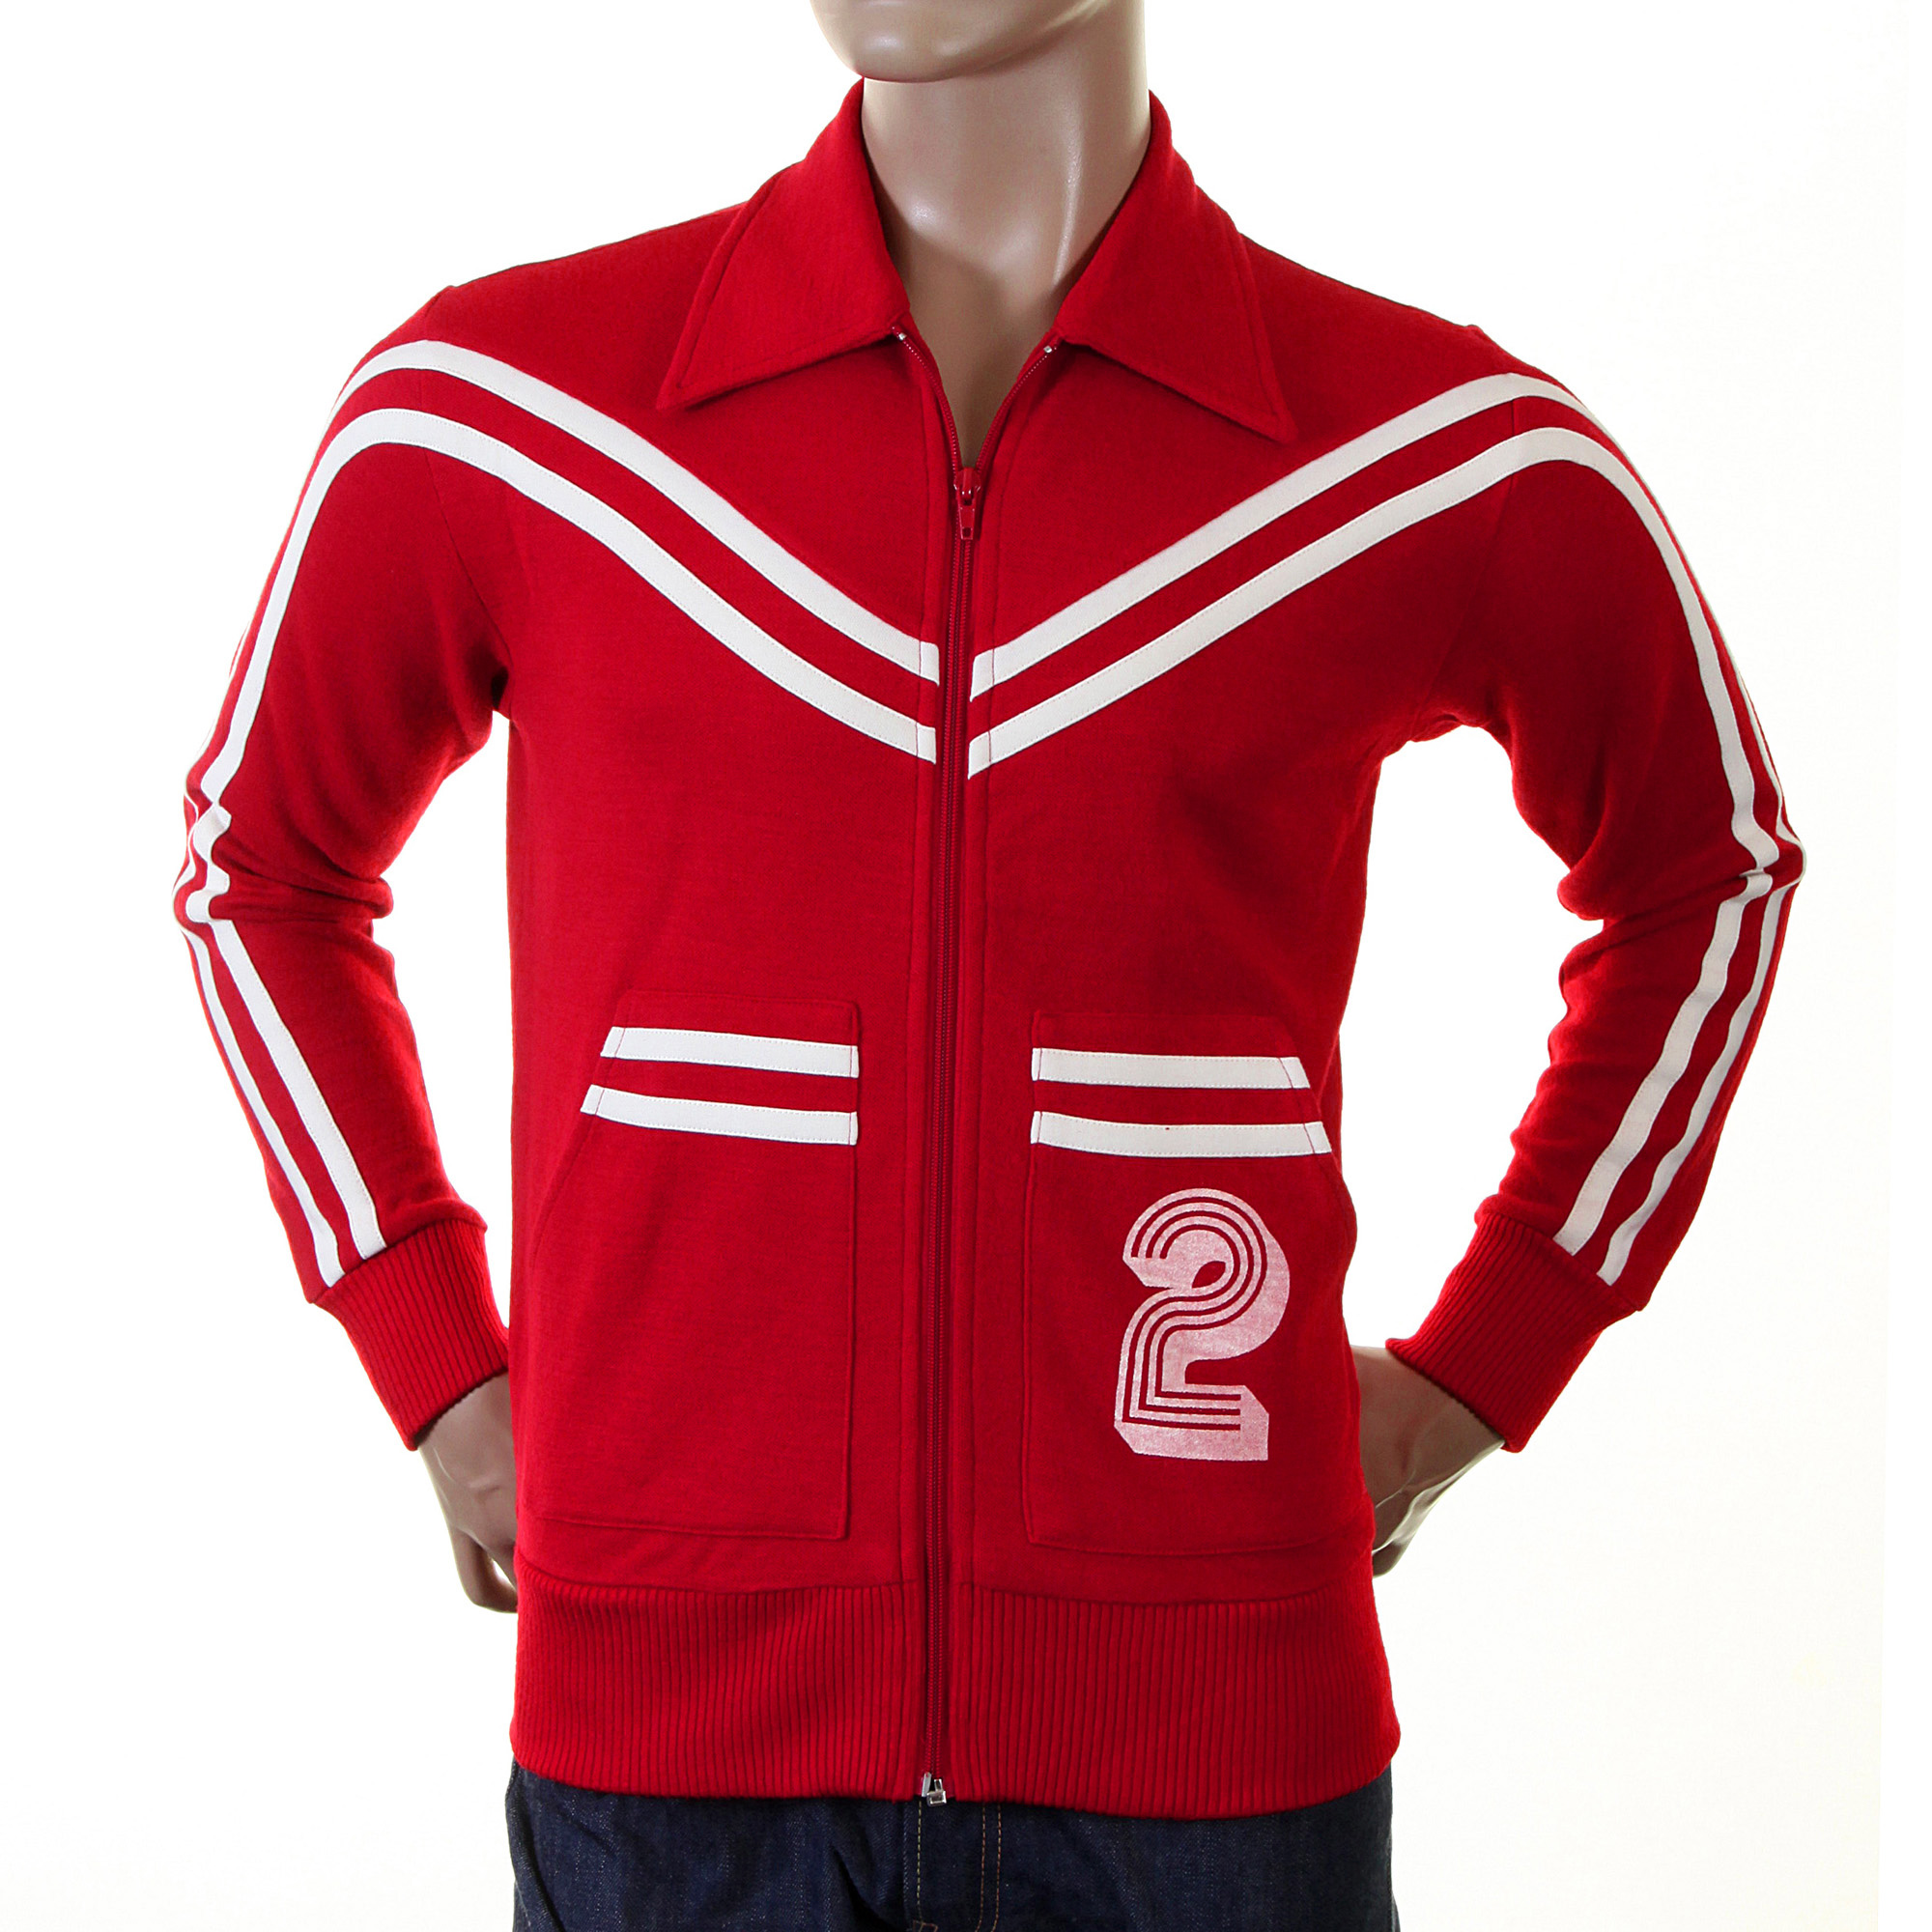 Evisu track Jacket in red